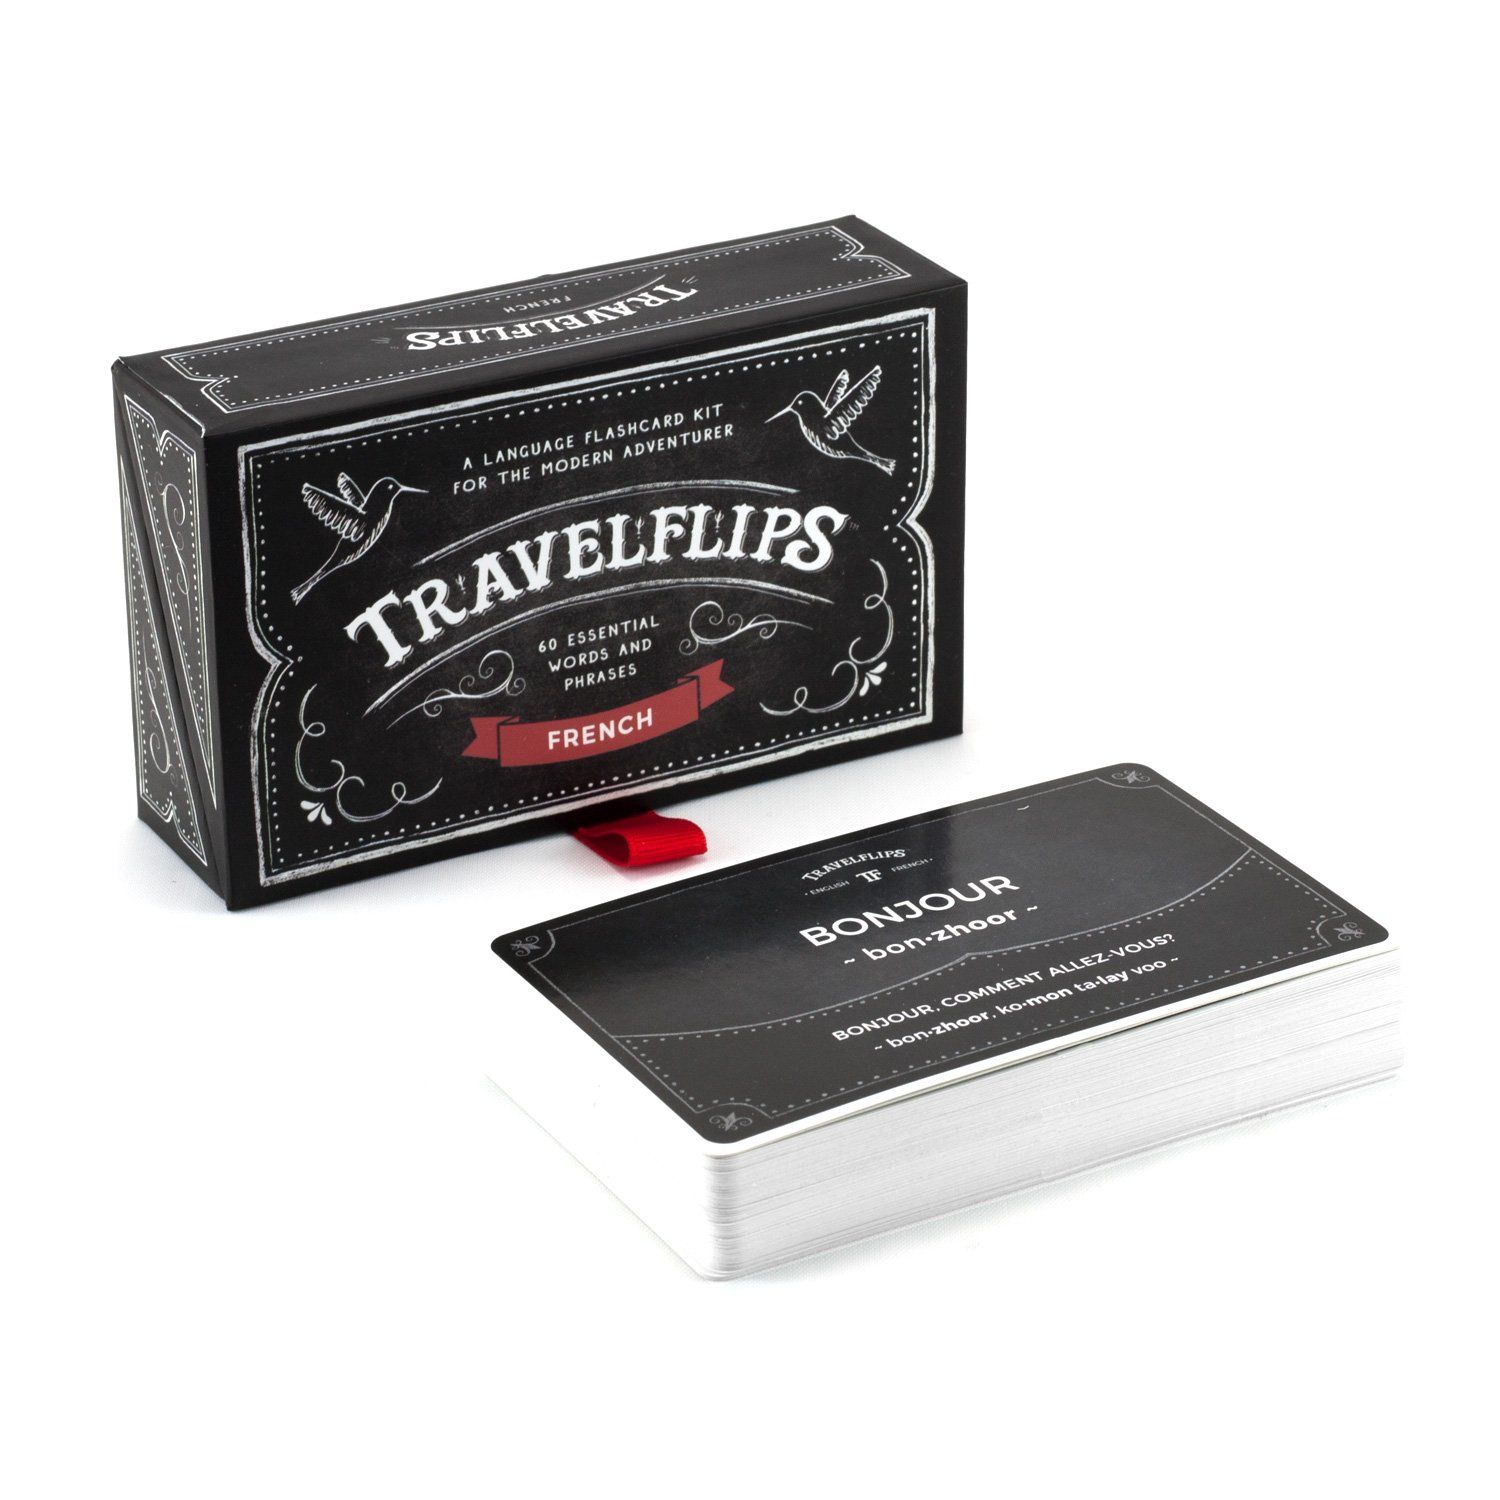 French Language Cards - Learn BasicVocabulary Words and Phrases - Easy Flash Cards for Beginners and Travelers